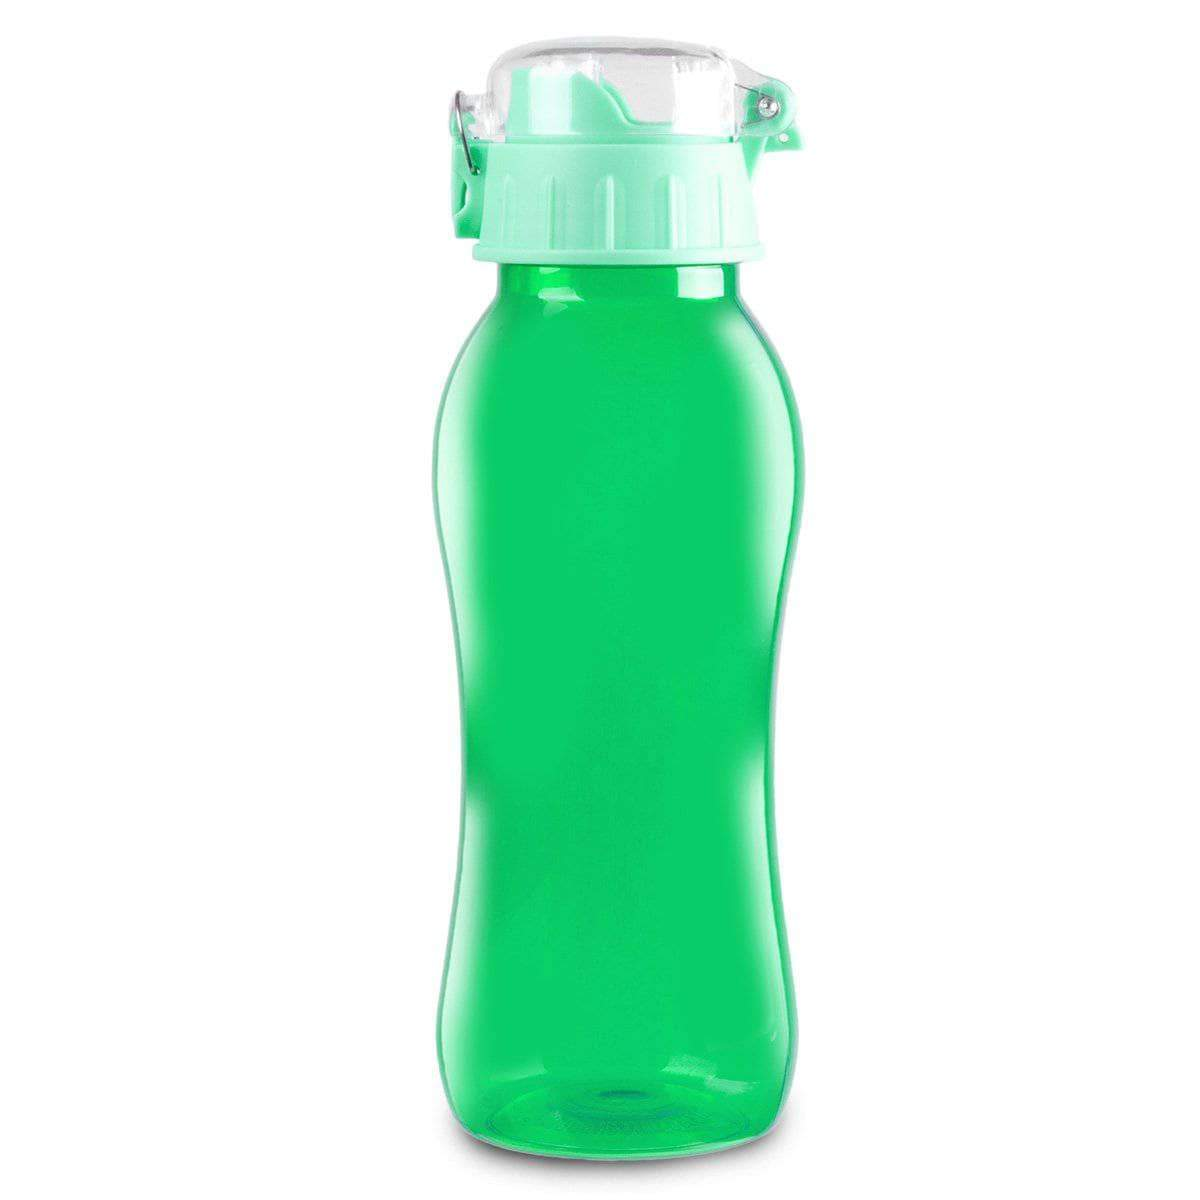 Geo Bottles Bottles Green 20oz BPA Free Sports Bottle With Wide Mouth Opening